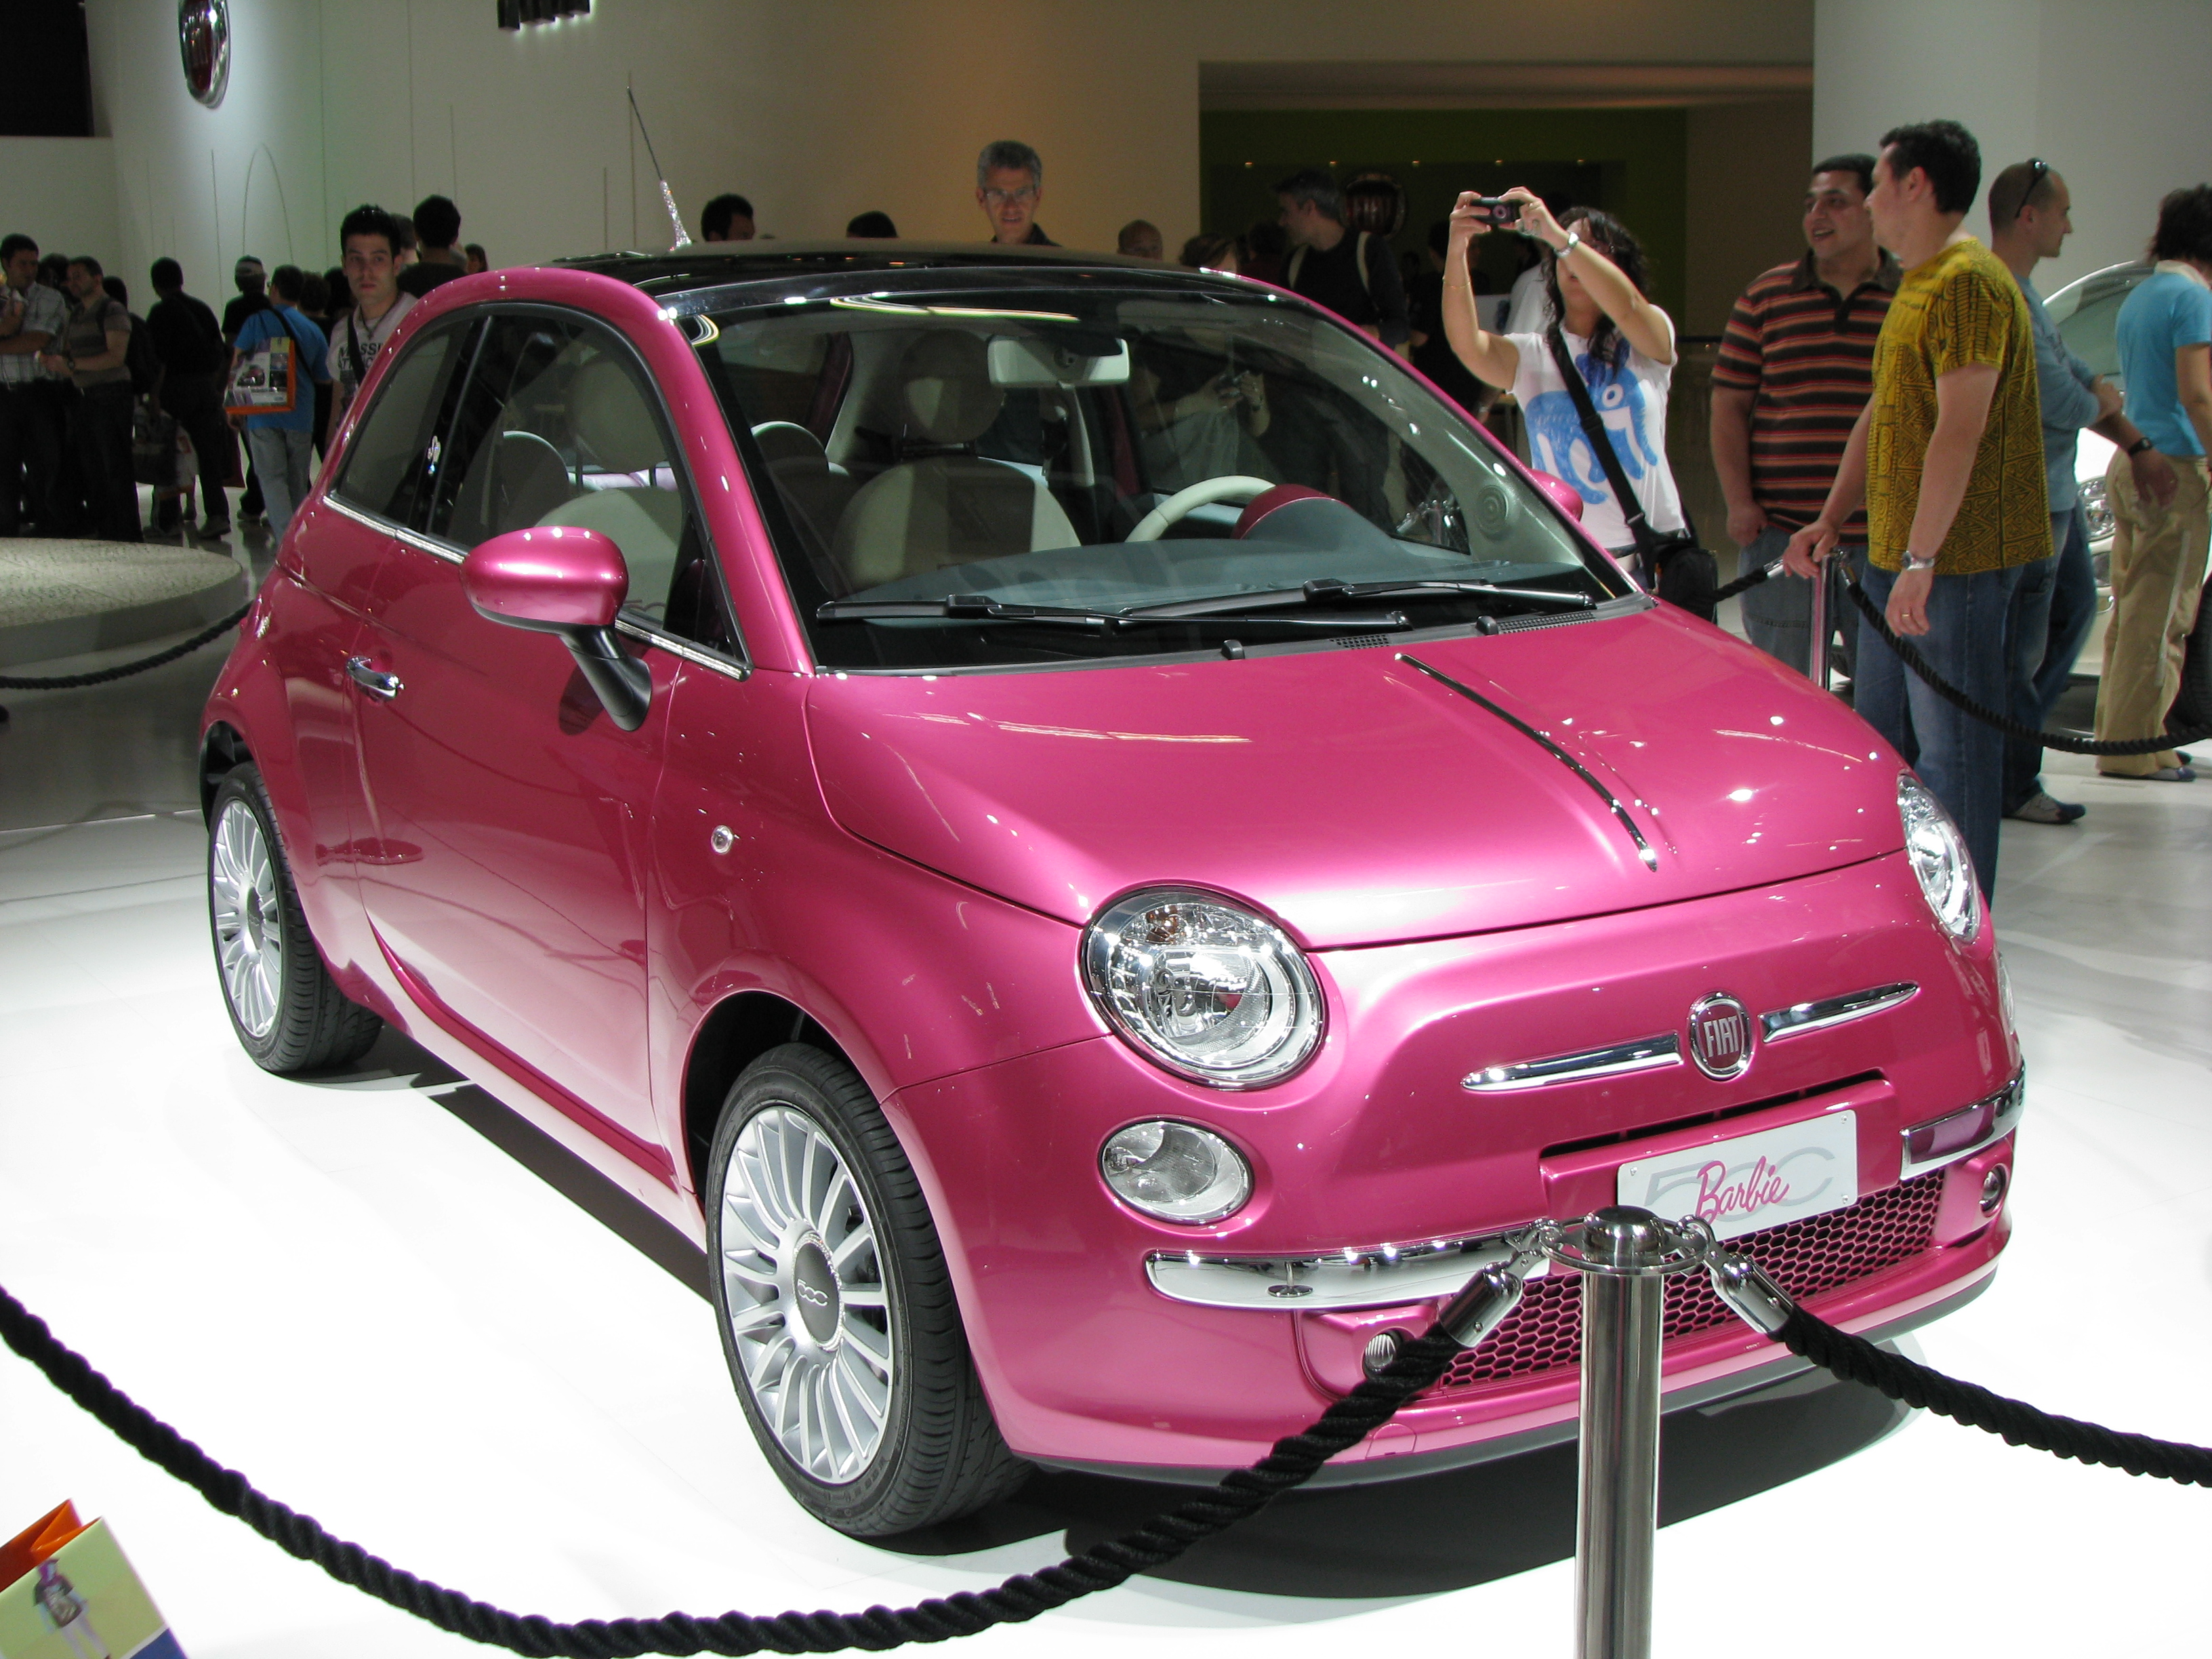 Archivo Fiat Barbie 500 Jpg Wikipedia La Enciclopedia Libre